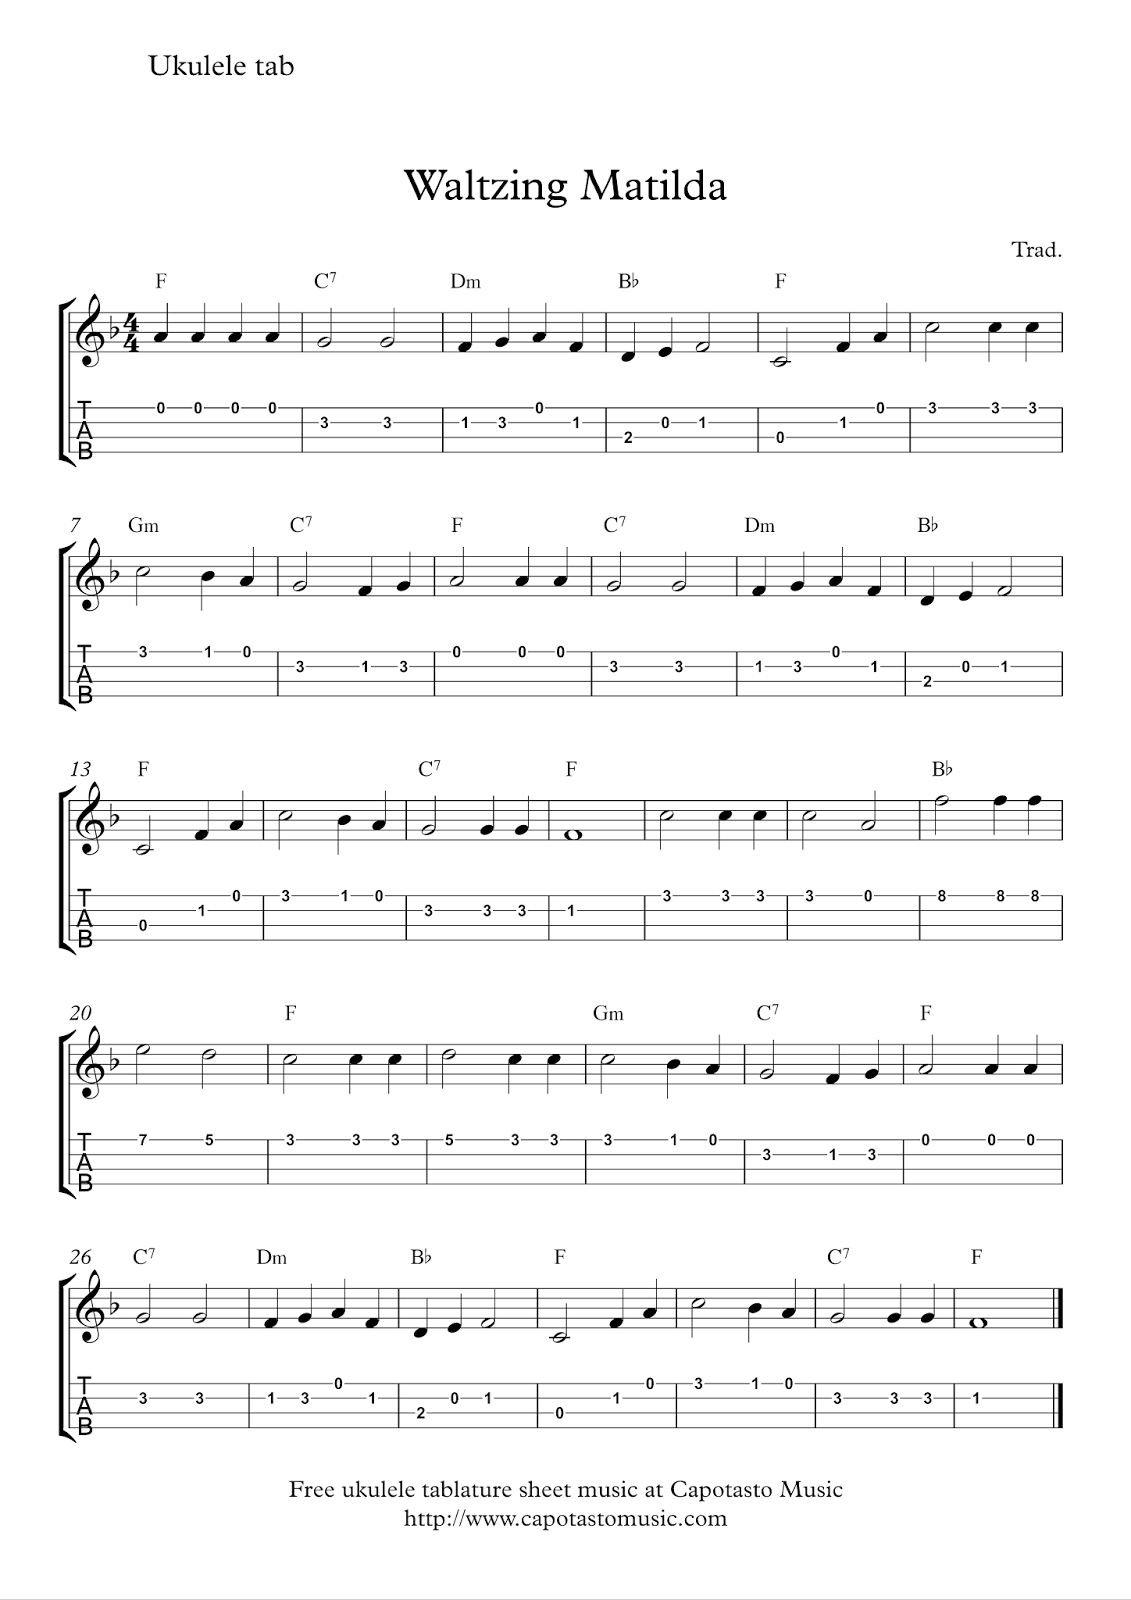 Free Sheet Music Scores Free Ukulele Tab Sheet Music Waltzing